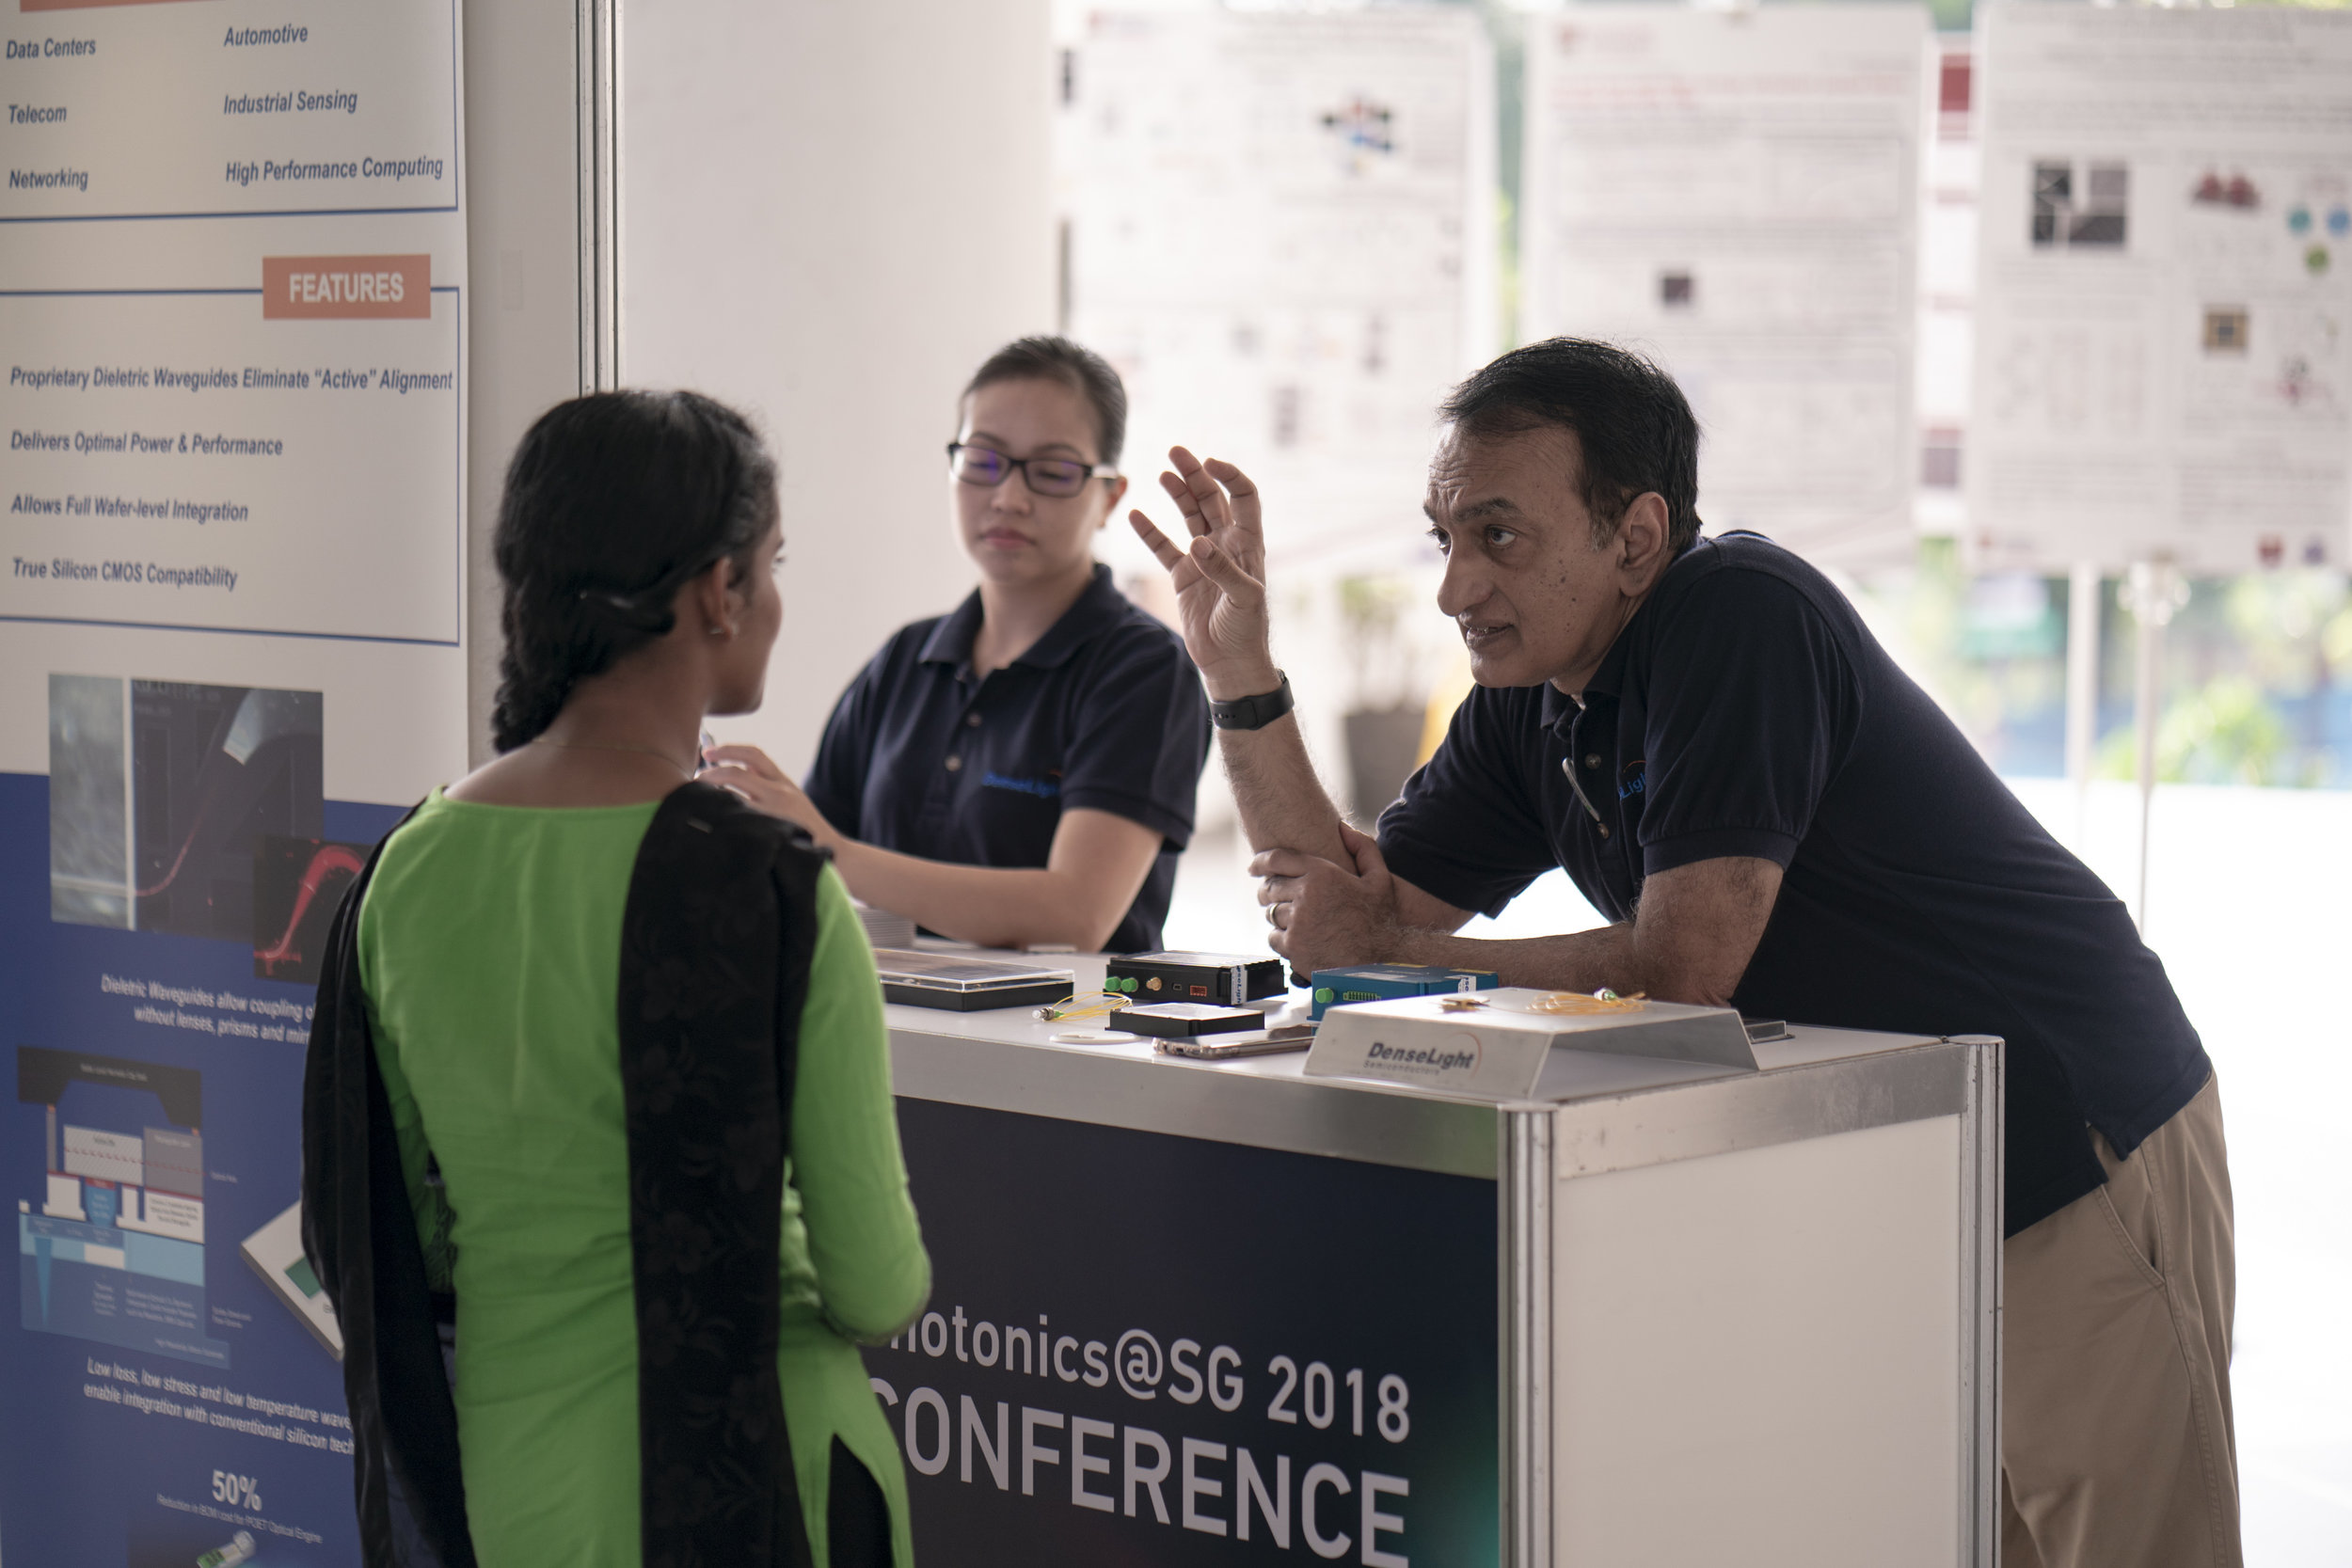 TPI Photonics SG 2018 Conference n Exhibition 0081rc.jpg